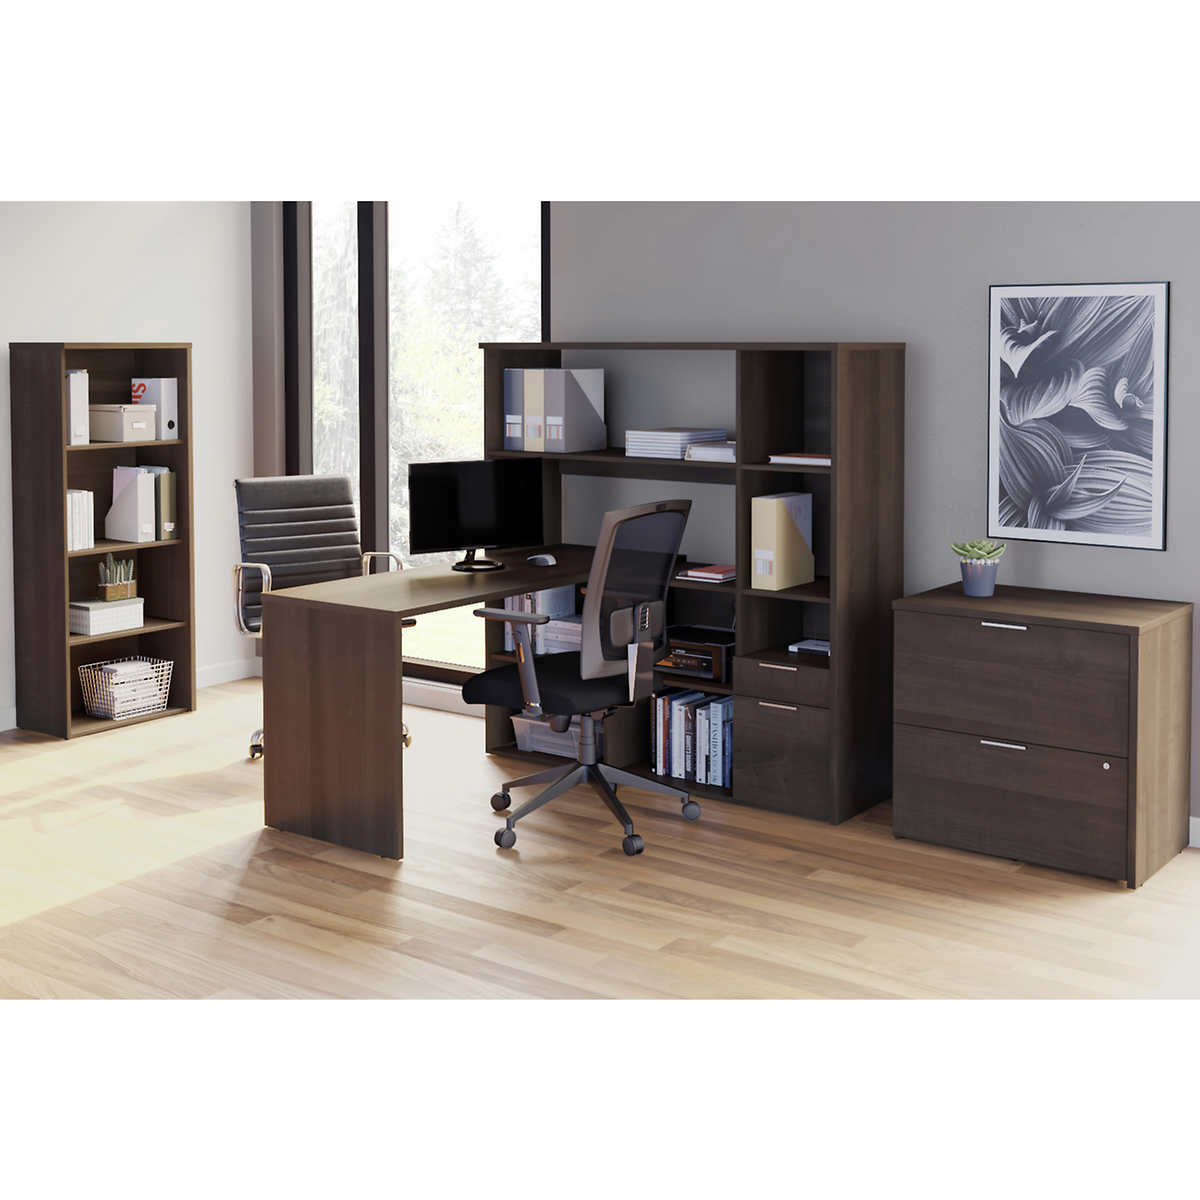 Rayel 32-piece L-Shape Desk with Bookcase and Lateral File Cabinet